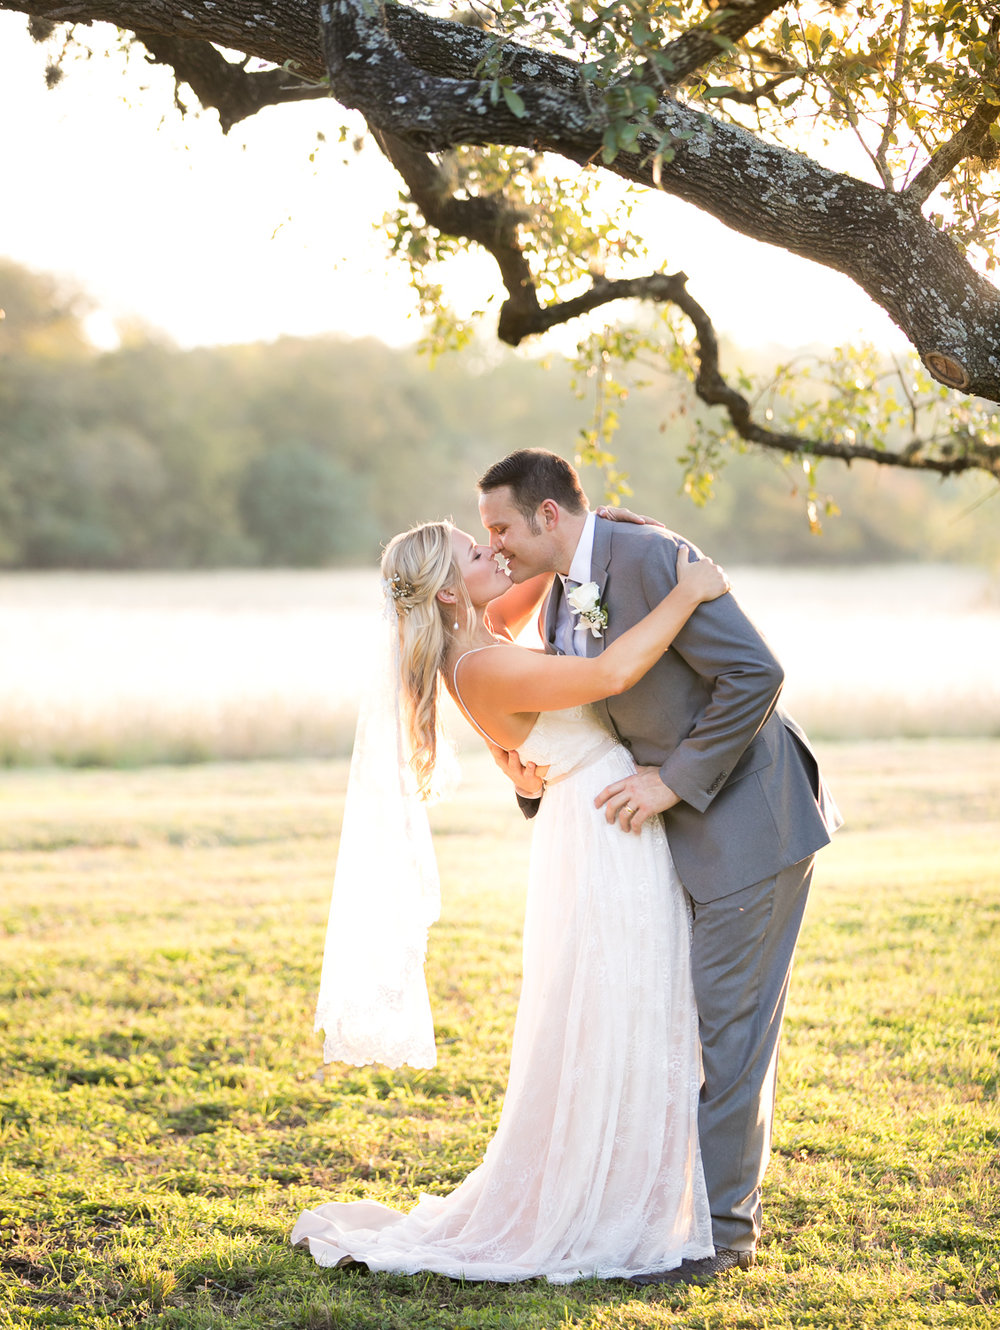 Wedding-photographer-austin-texas-016.jpg